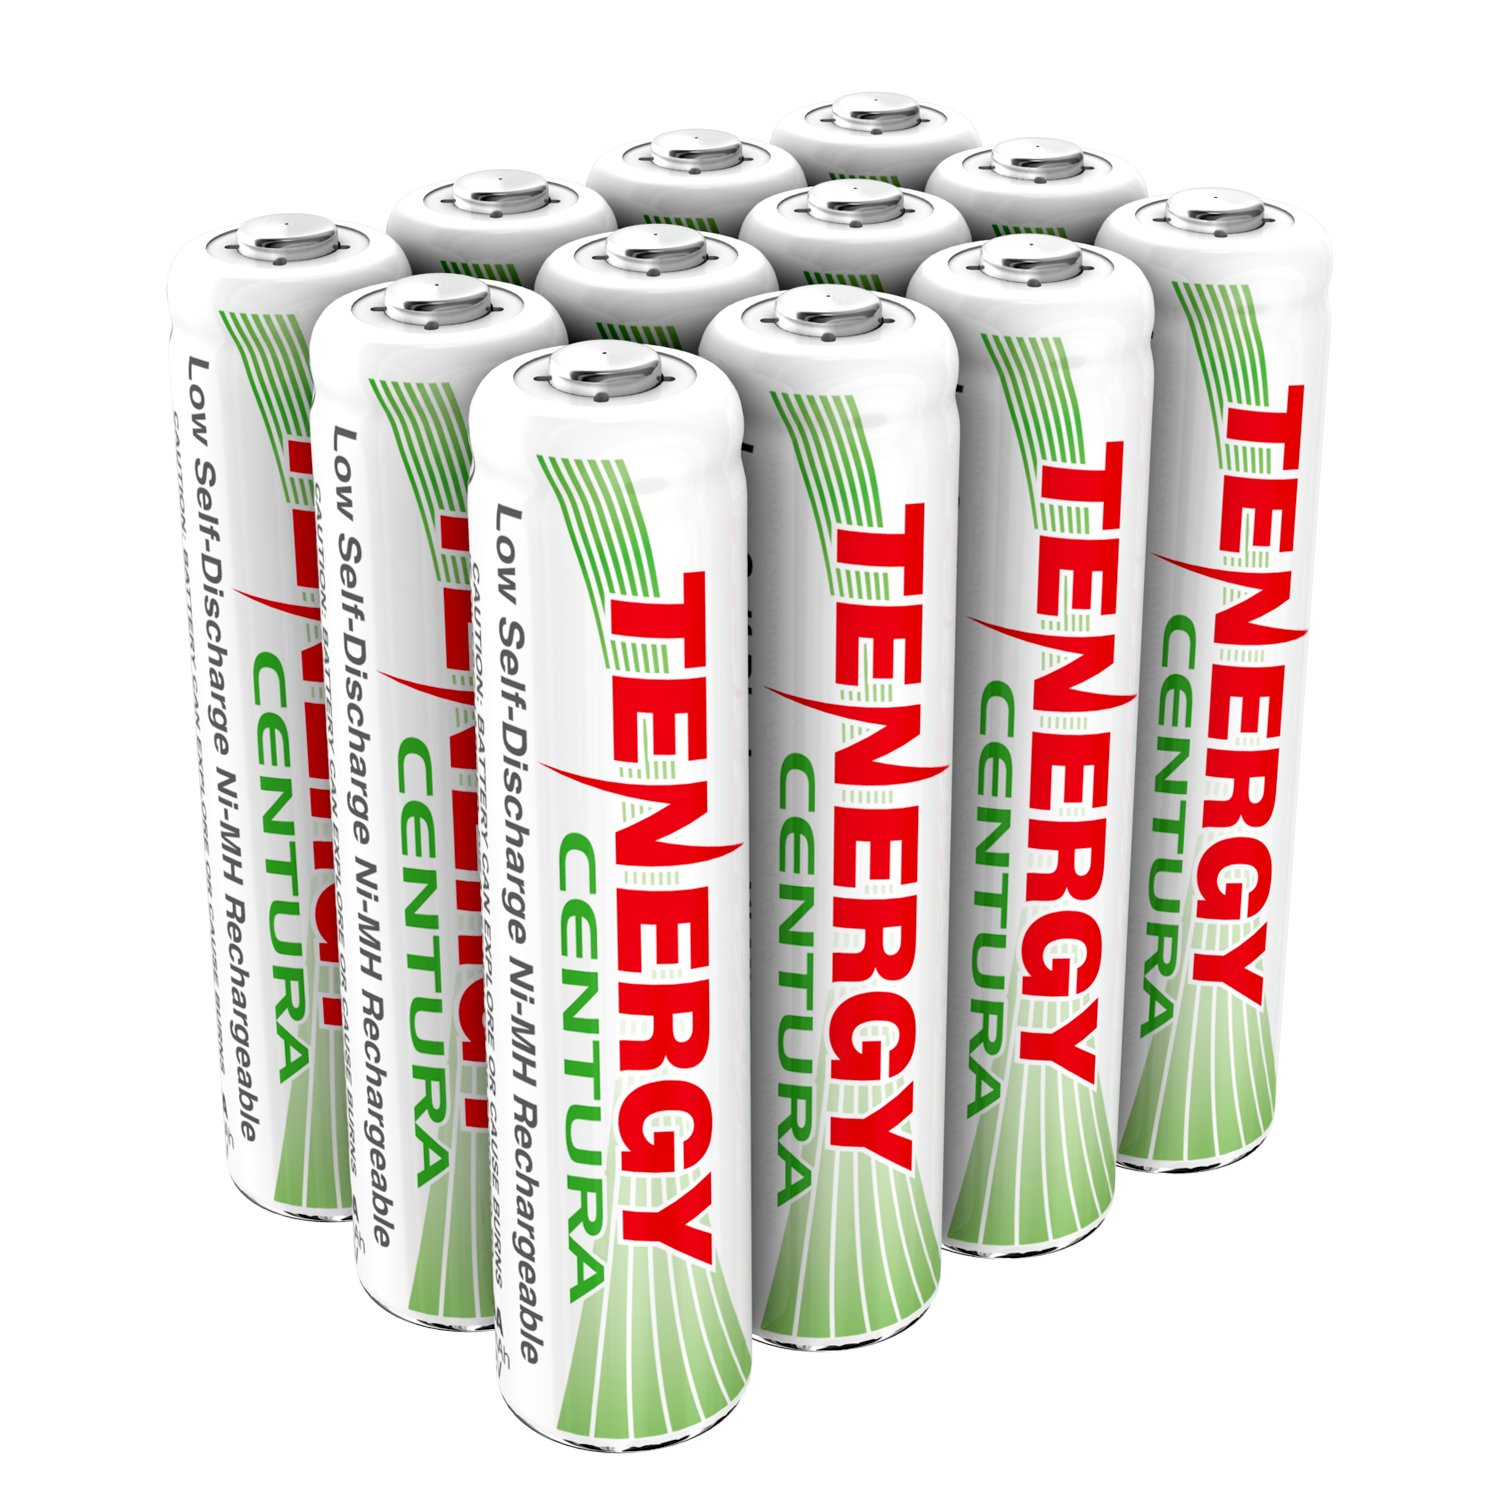 Tenergy Centura AAA NIMH Rechargeable Battery 800mAh Low Self Discharge Triple A Battery Pre-Charged AAA Size Batteries Pack for Solar Lights/Remote Control/Toys/Flashlight/Mice (12 PCS)